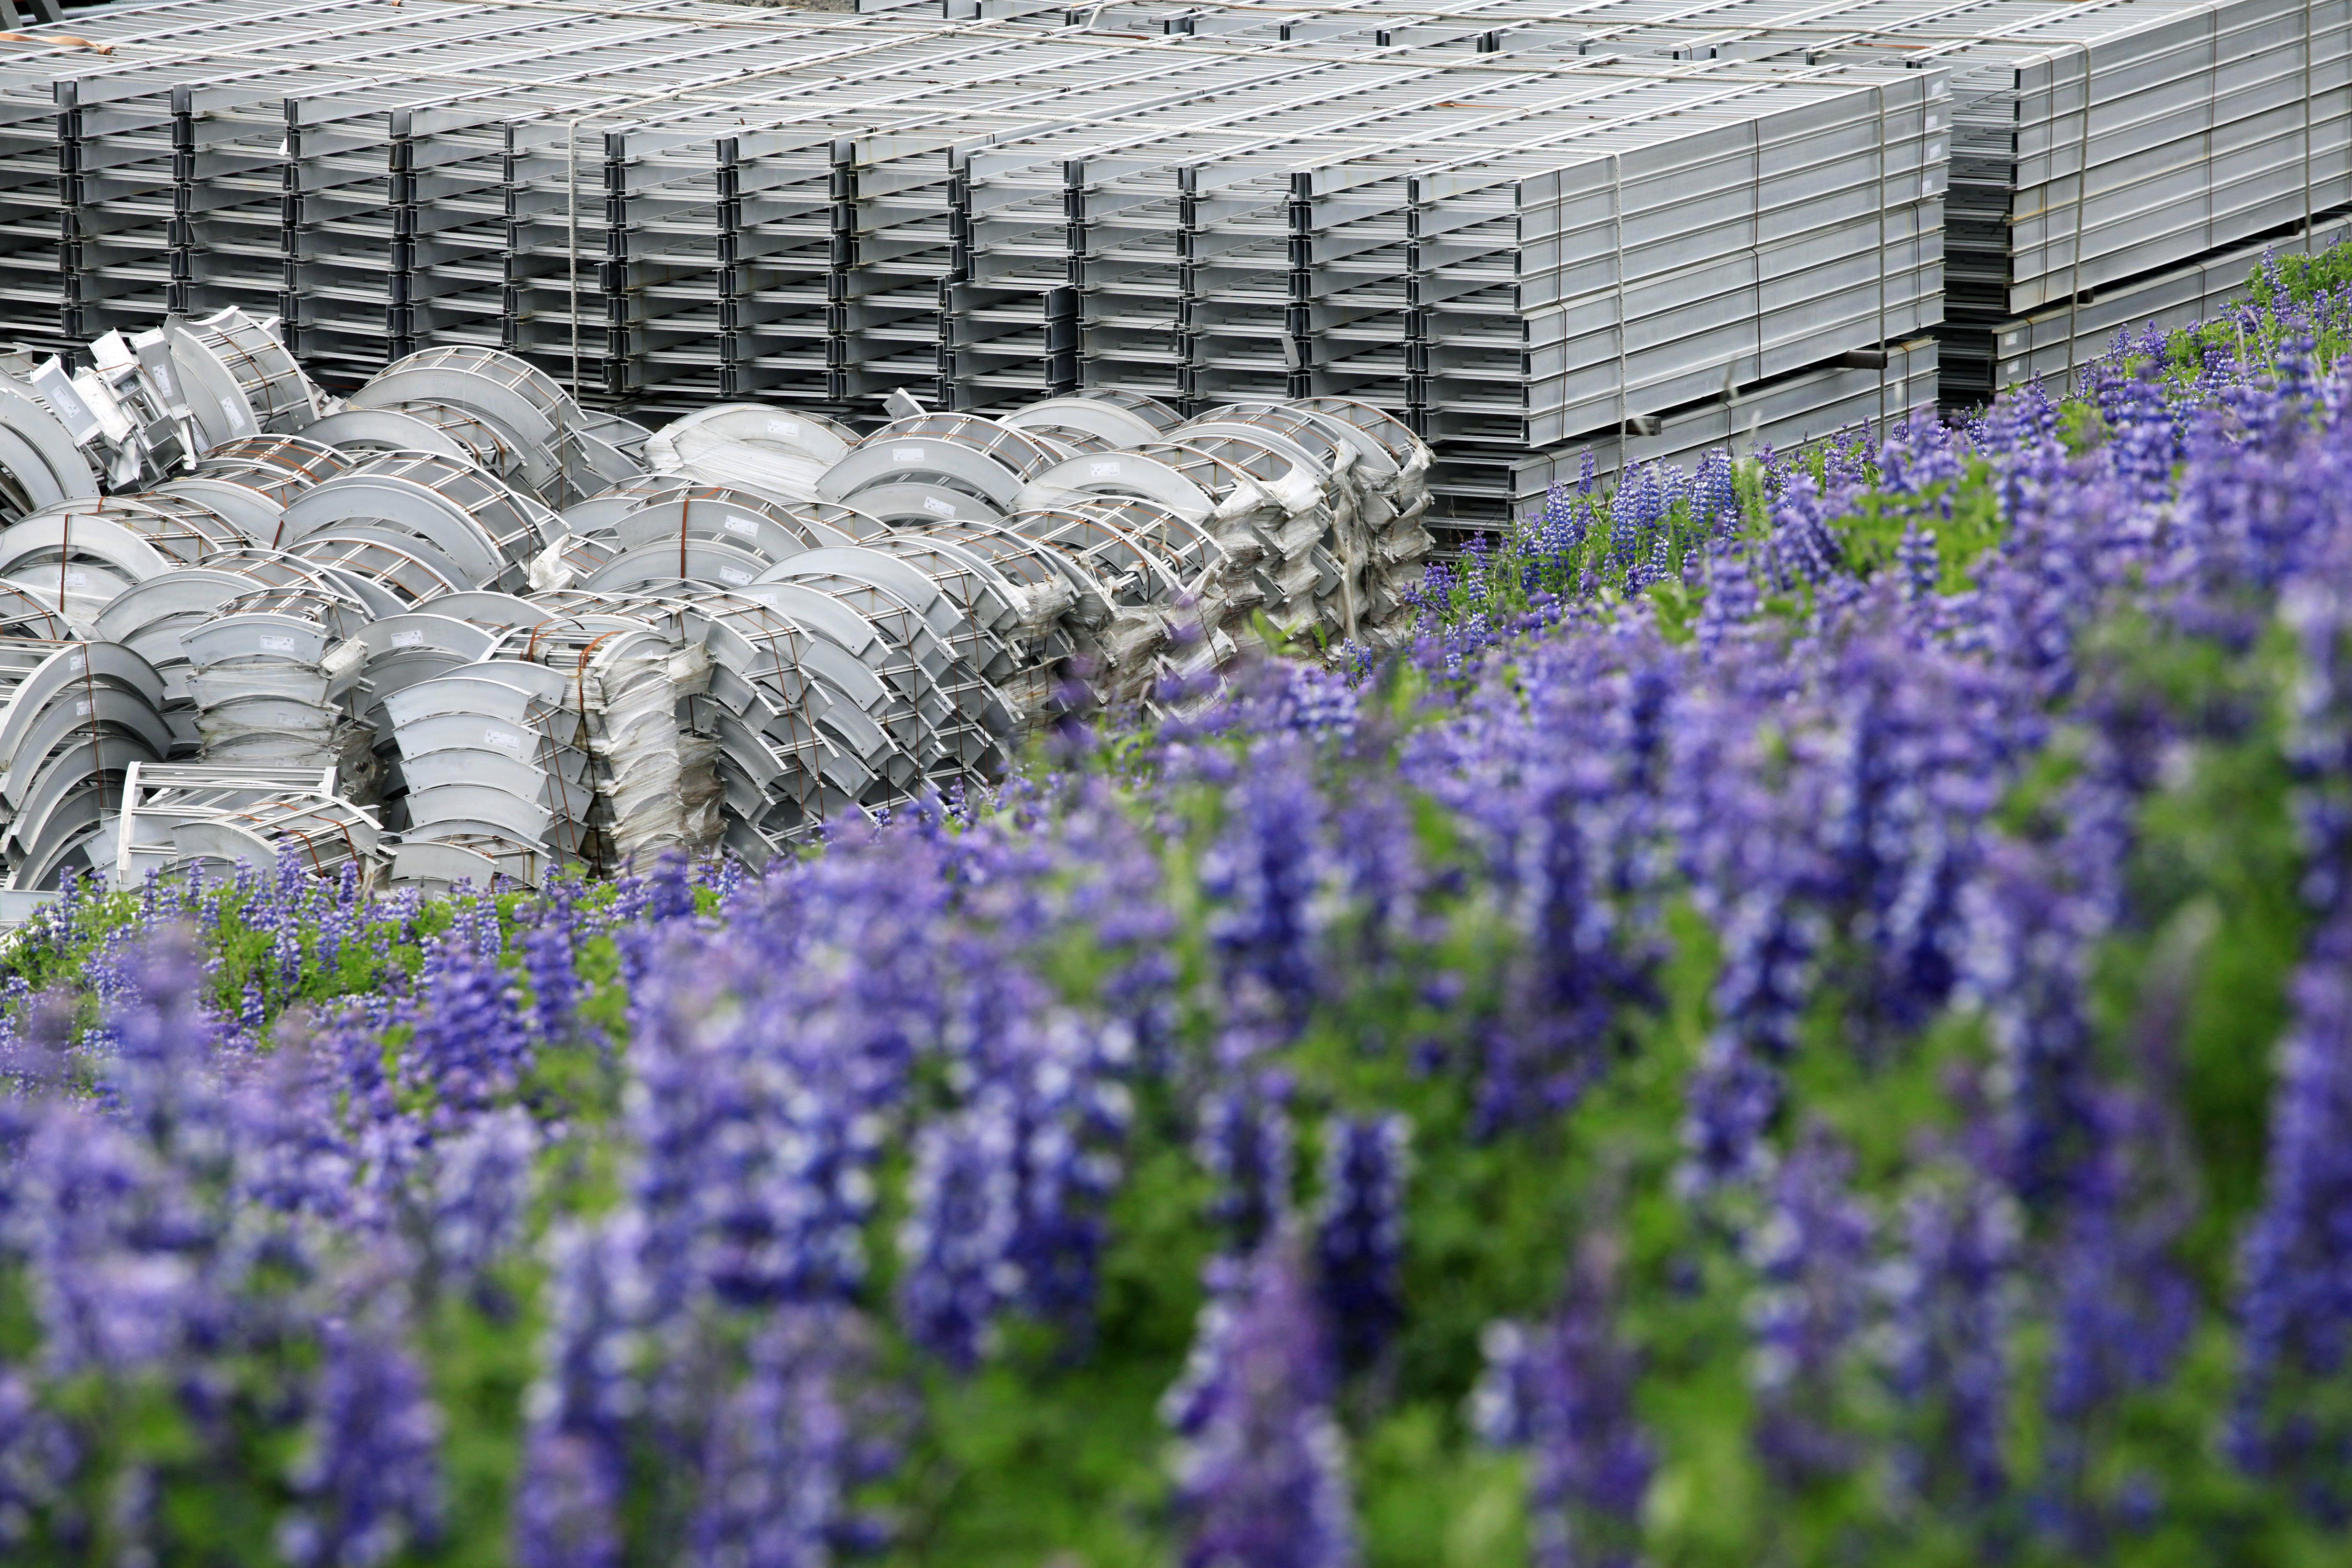 Stacks of fabricated aluminum are stored at Alcoa's Fjardaal aluminum smelter in Reydarfjordur, Iceland, July 5, 2011. The environmentally friendly plant utilizes hydroelectric power. (AP Photo/Mark Lennihan)